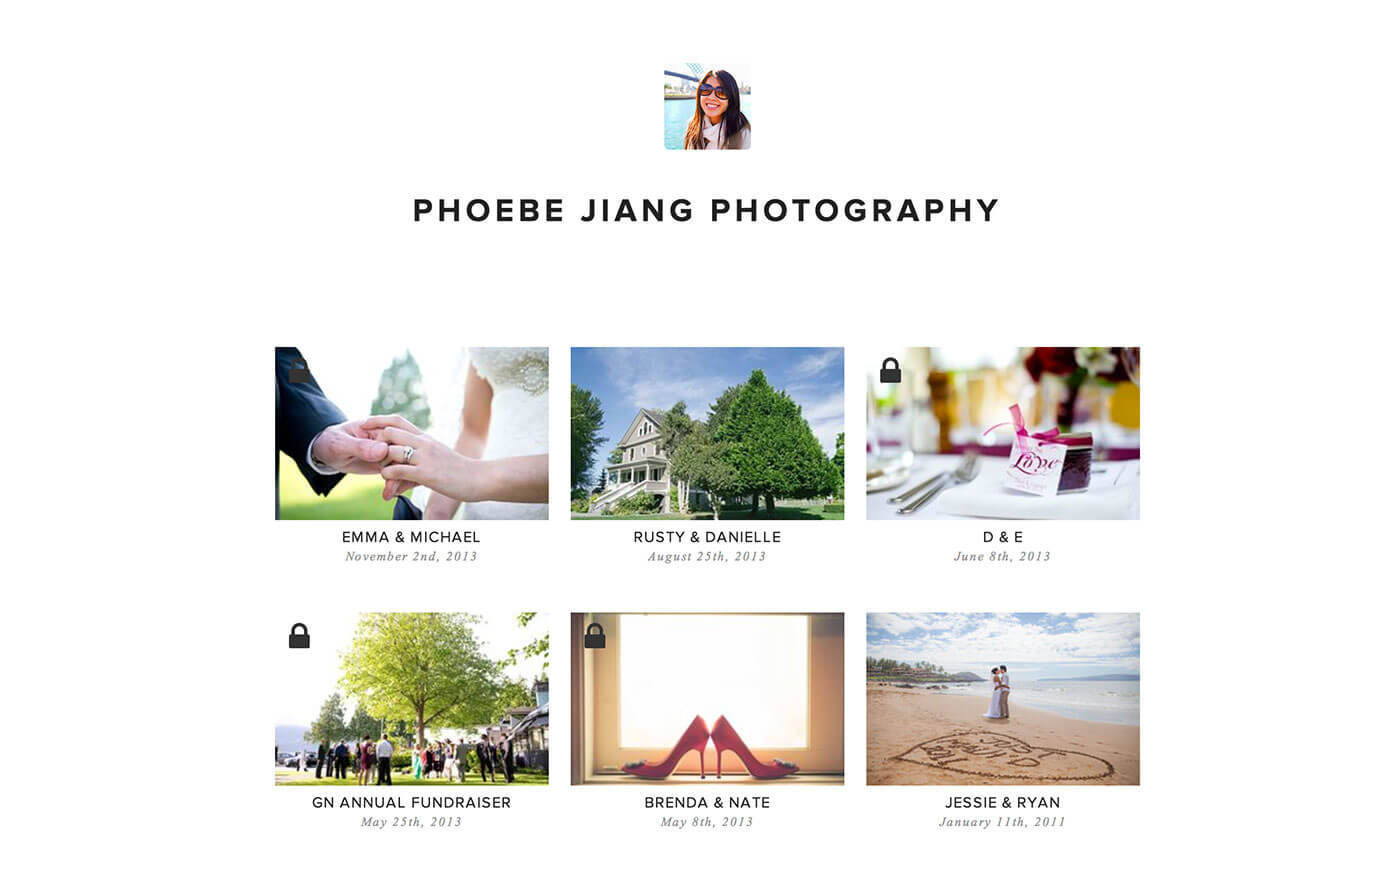 Pixieset - Client photo gallery for modern photographers